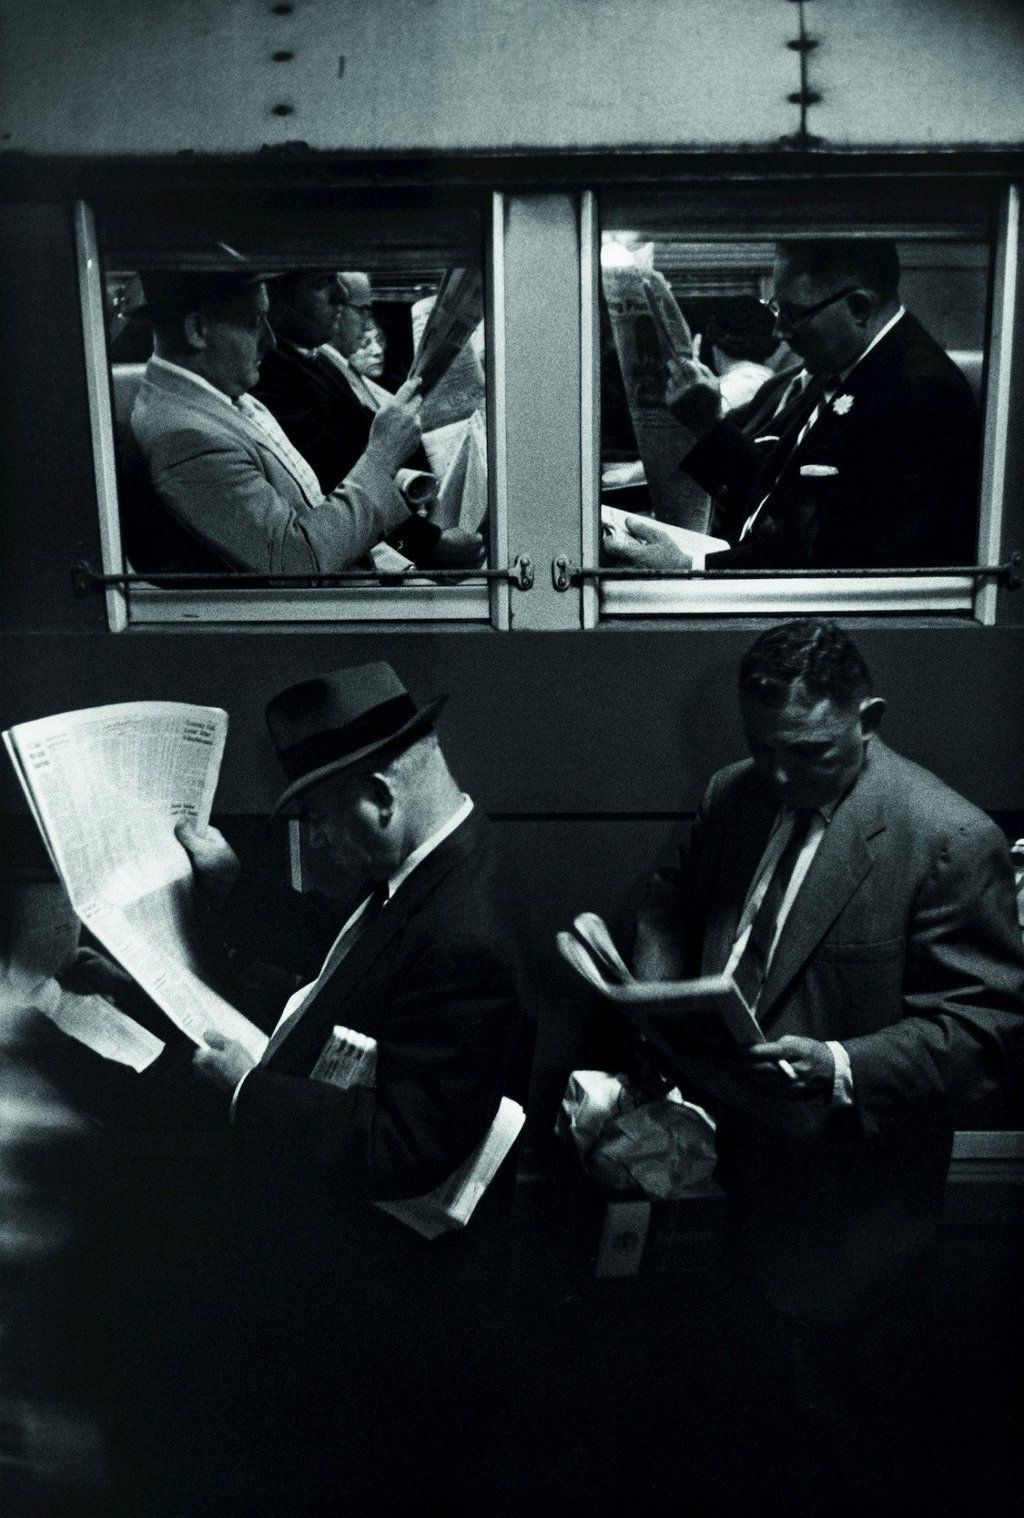 """Photography pro: """"#Photography Louis Stettner - Penn Station (1958)  — Camille Stein (CamilleStein) April 3, 2016"""" : twitter"""